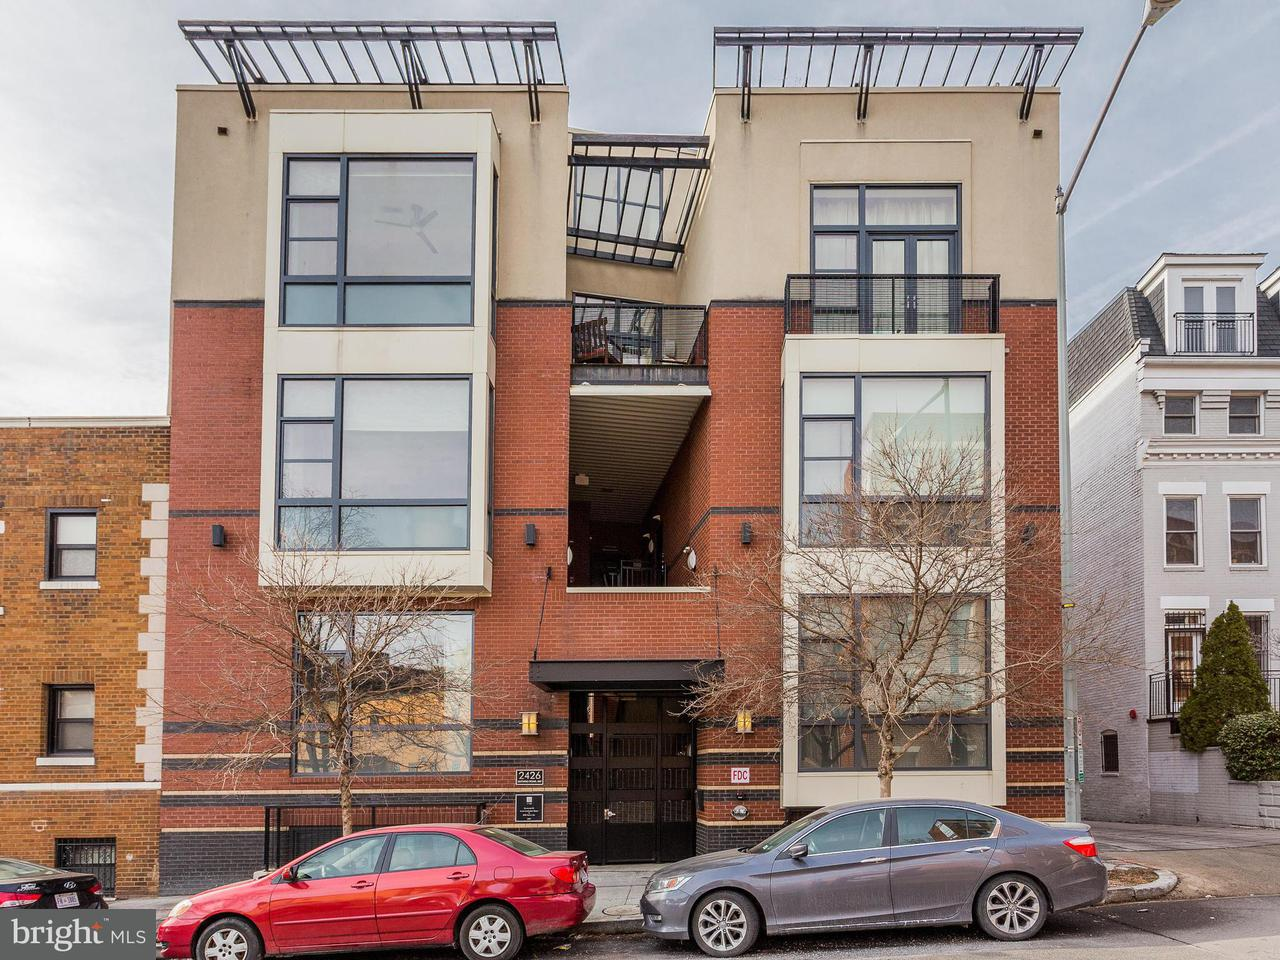 Condominium for Sale at 2426 Ontario Rd Nw #101 2426 Ontario Rd Nw #101 Washington, District Of Columbia 20009 United States